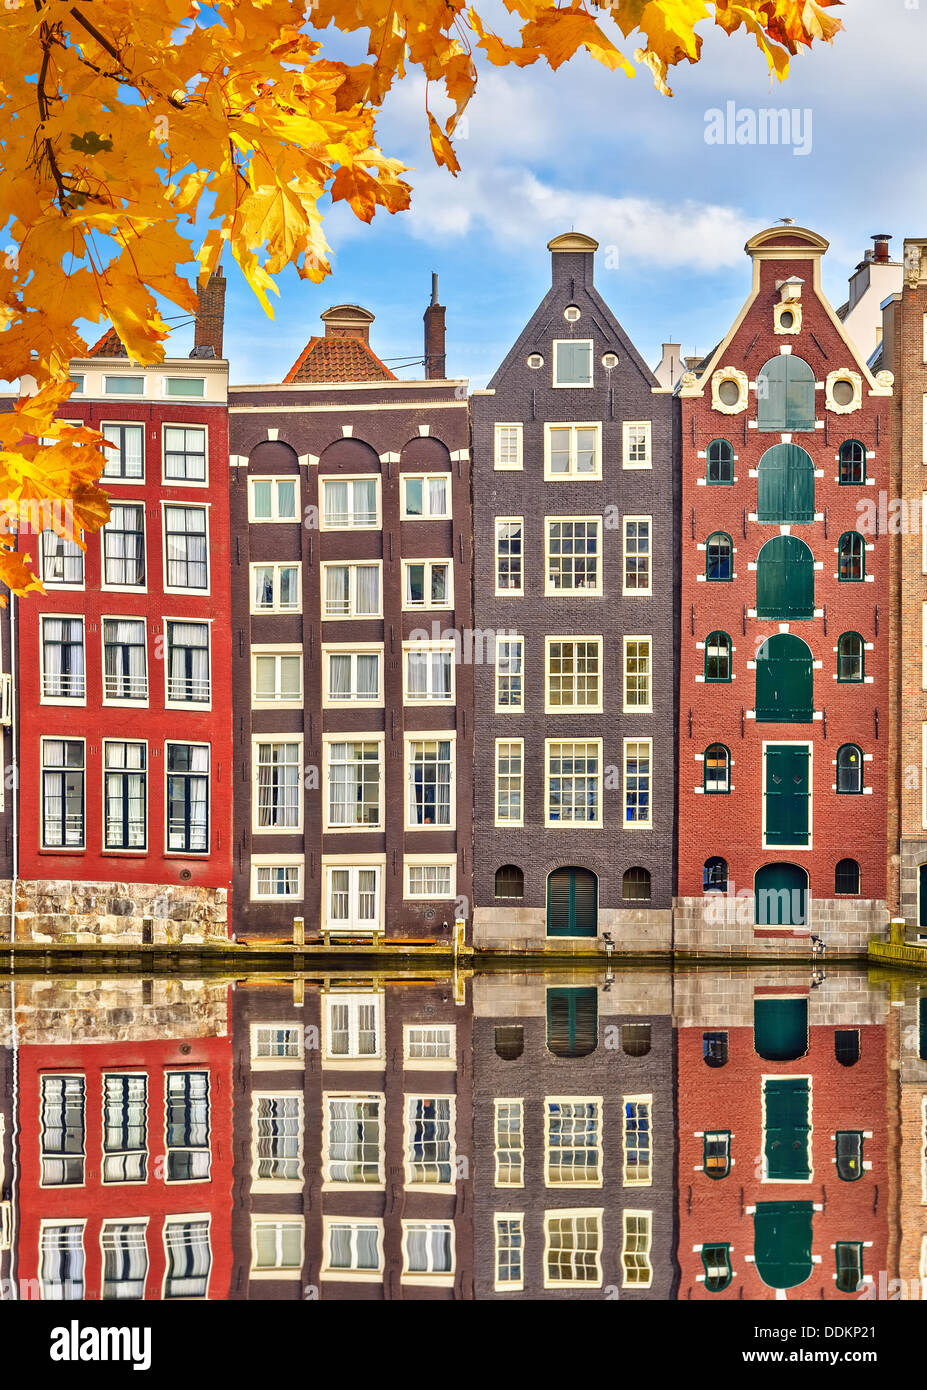 Old buildings in Amsterdam - Stock Image